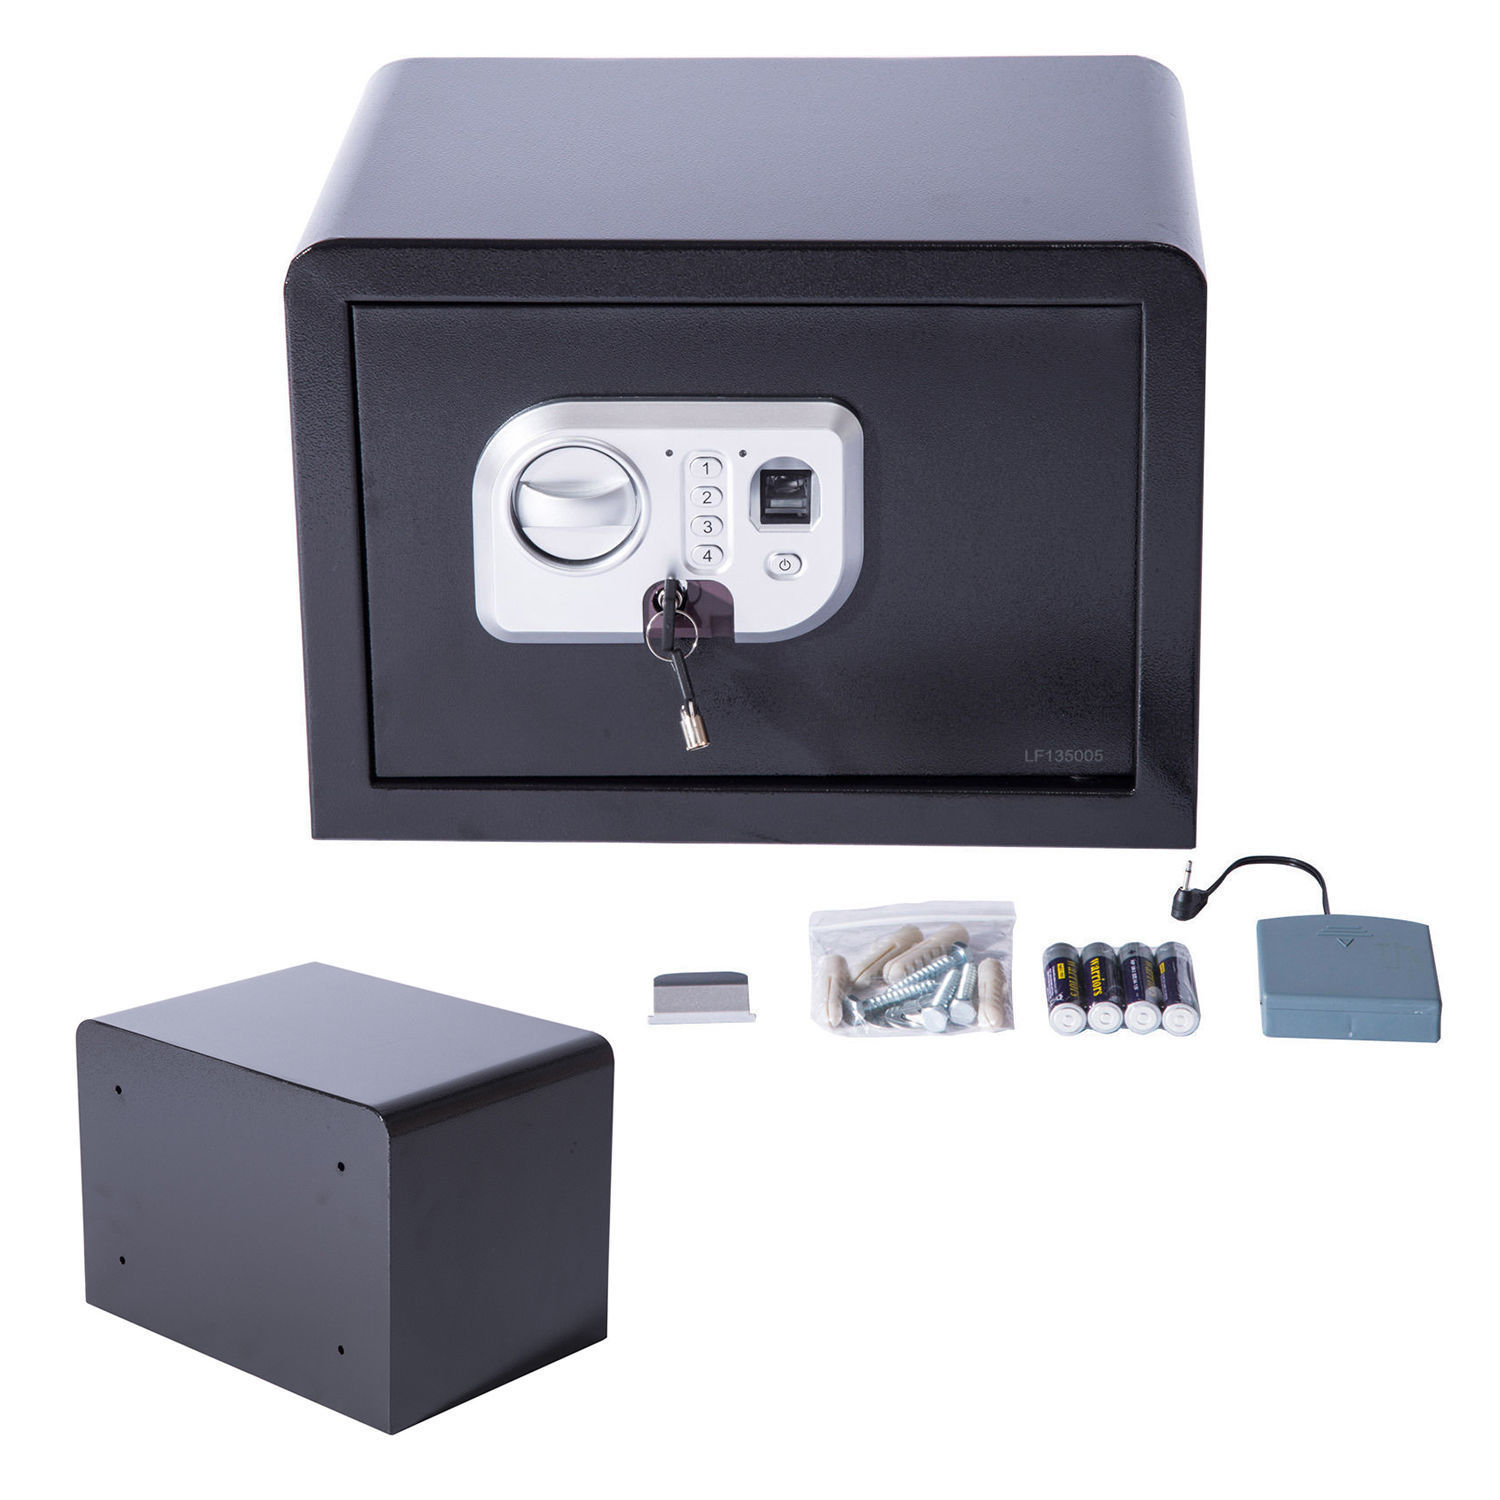 14 39 39 electronic safe box biometric fingerprint digital wall keypad lock security ebay. Black Bedroom Furniture Sets. Home Design Ideas